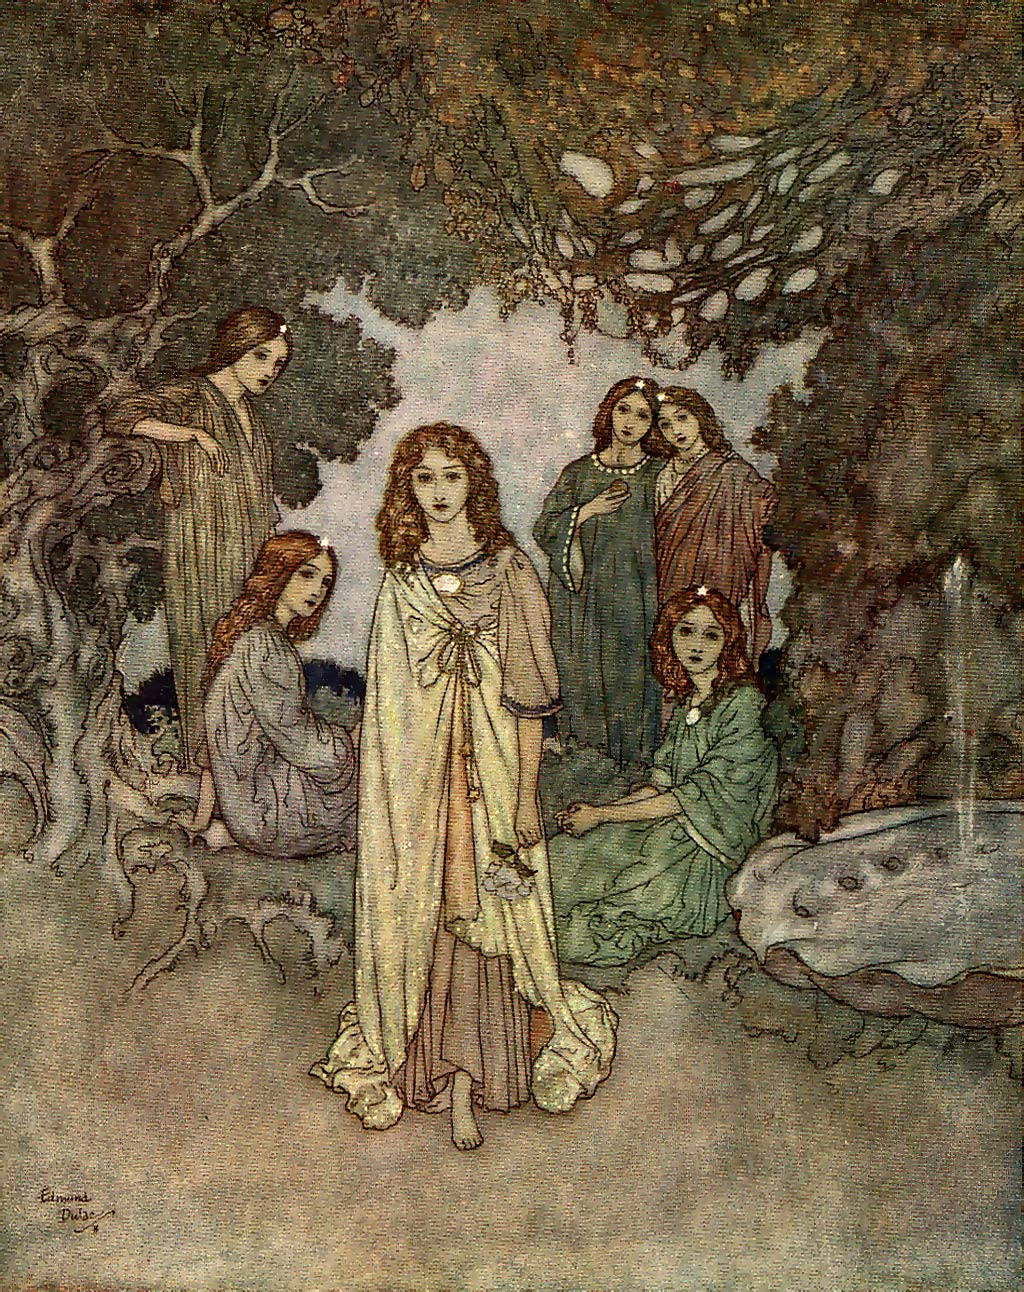 File:Edmund Dulac - The Garden of Paradise - Fairy of the Garden.jpg ...